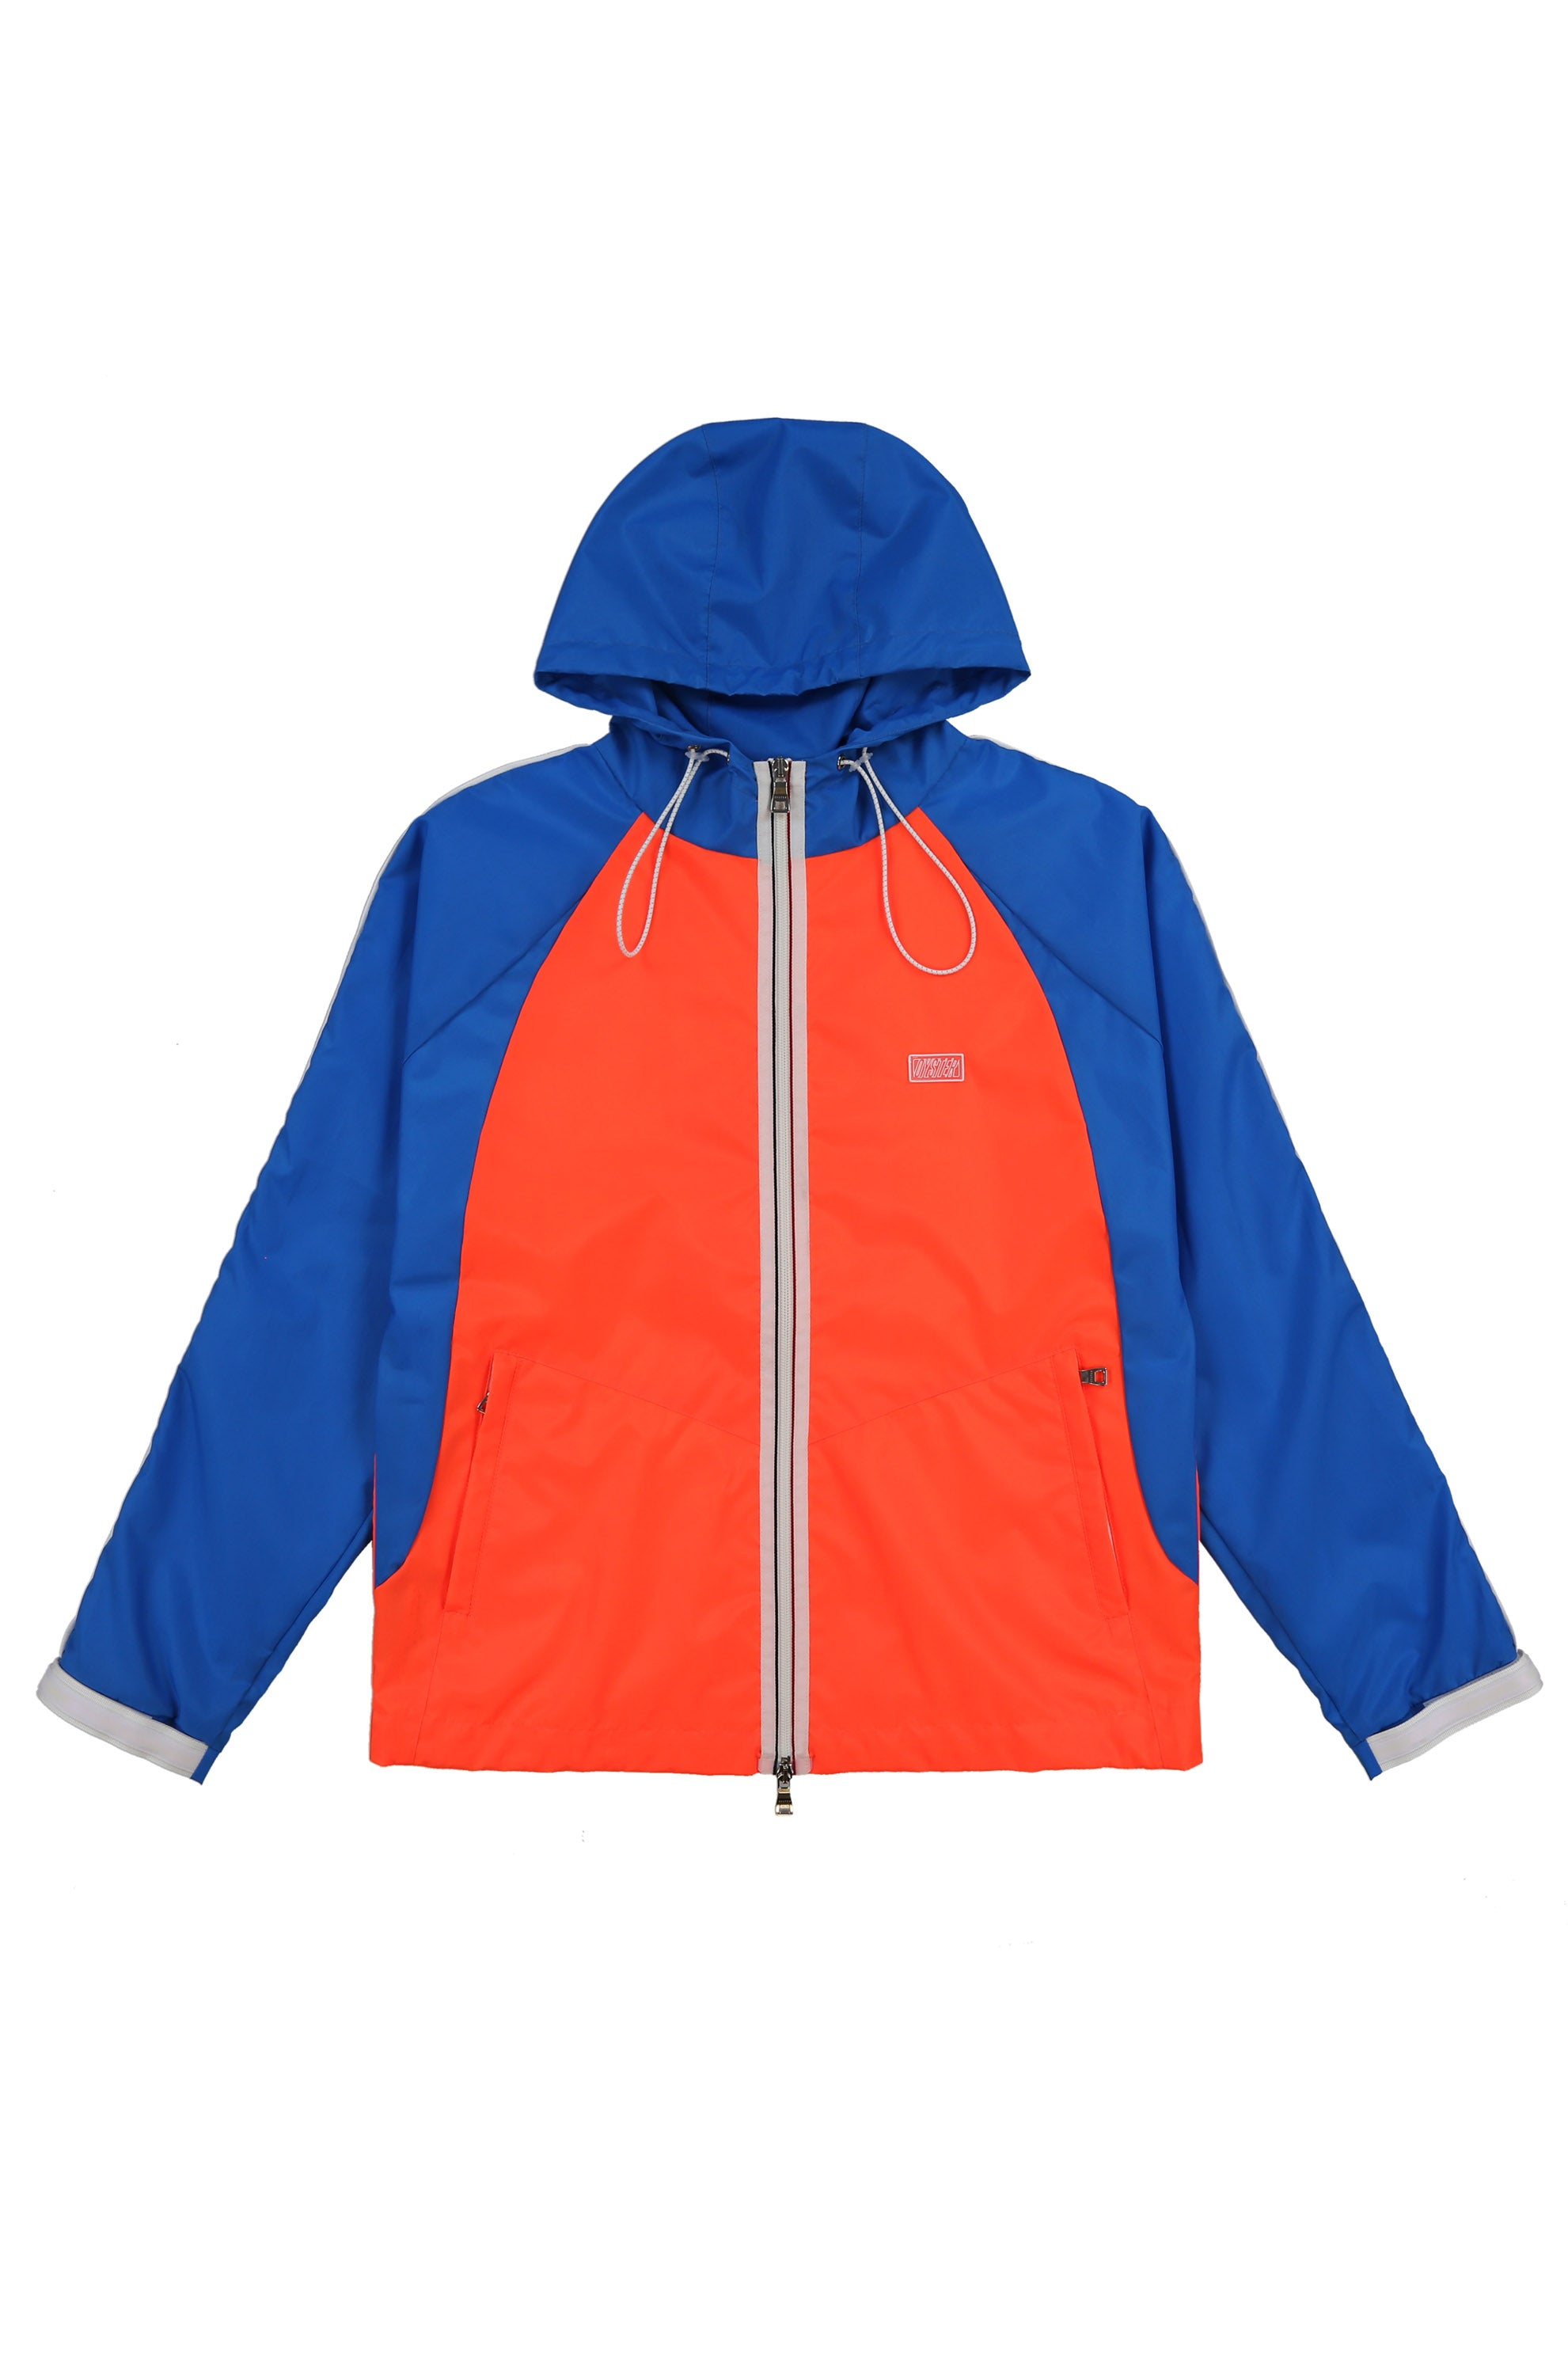 MIA Windbreaker (Electric Blue/ Neon Orange)